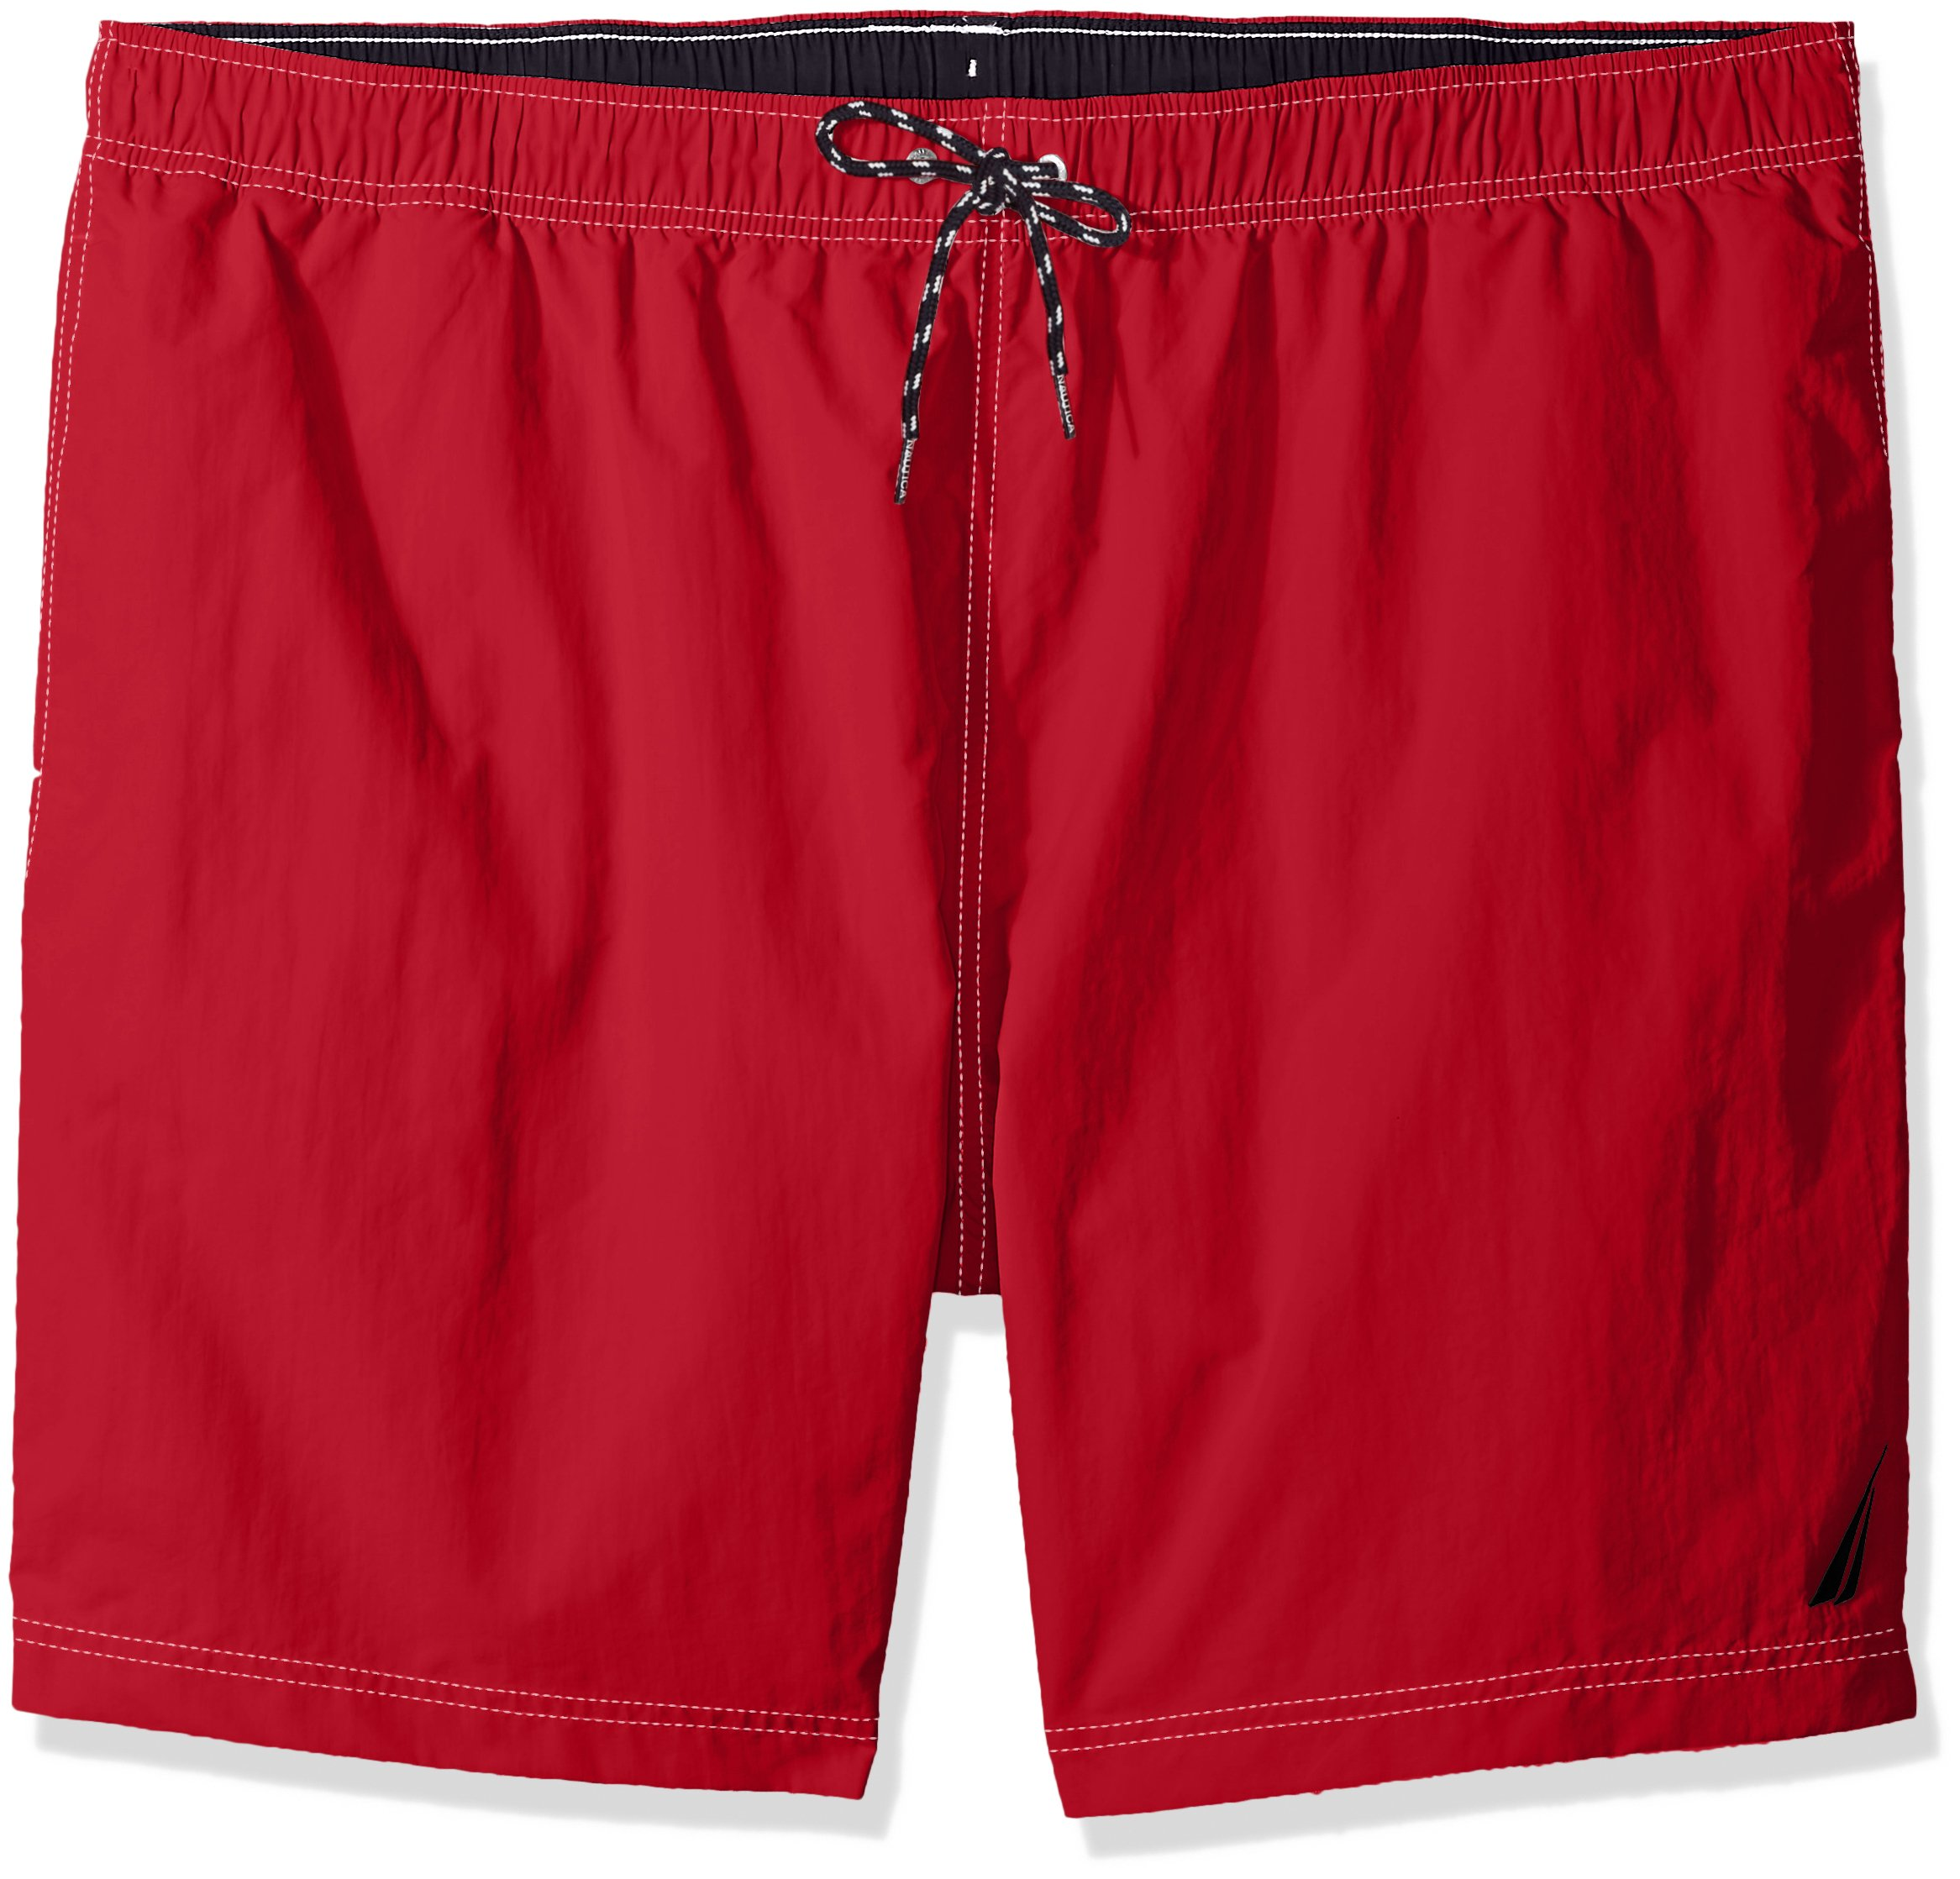 e88c650bf0 Galleon - Nautica Men's Big And Tall Solid Quick Dry Classic Logo Swim Trunk,  Red, 2XLT